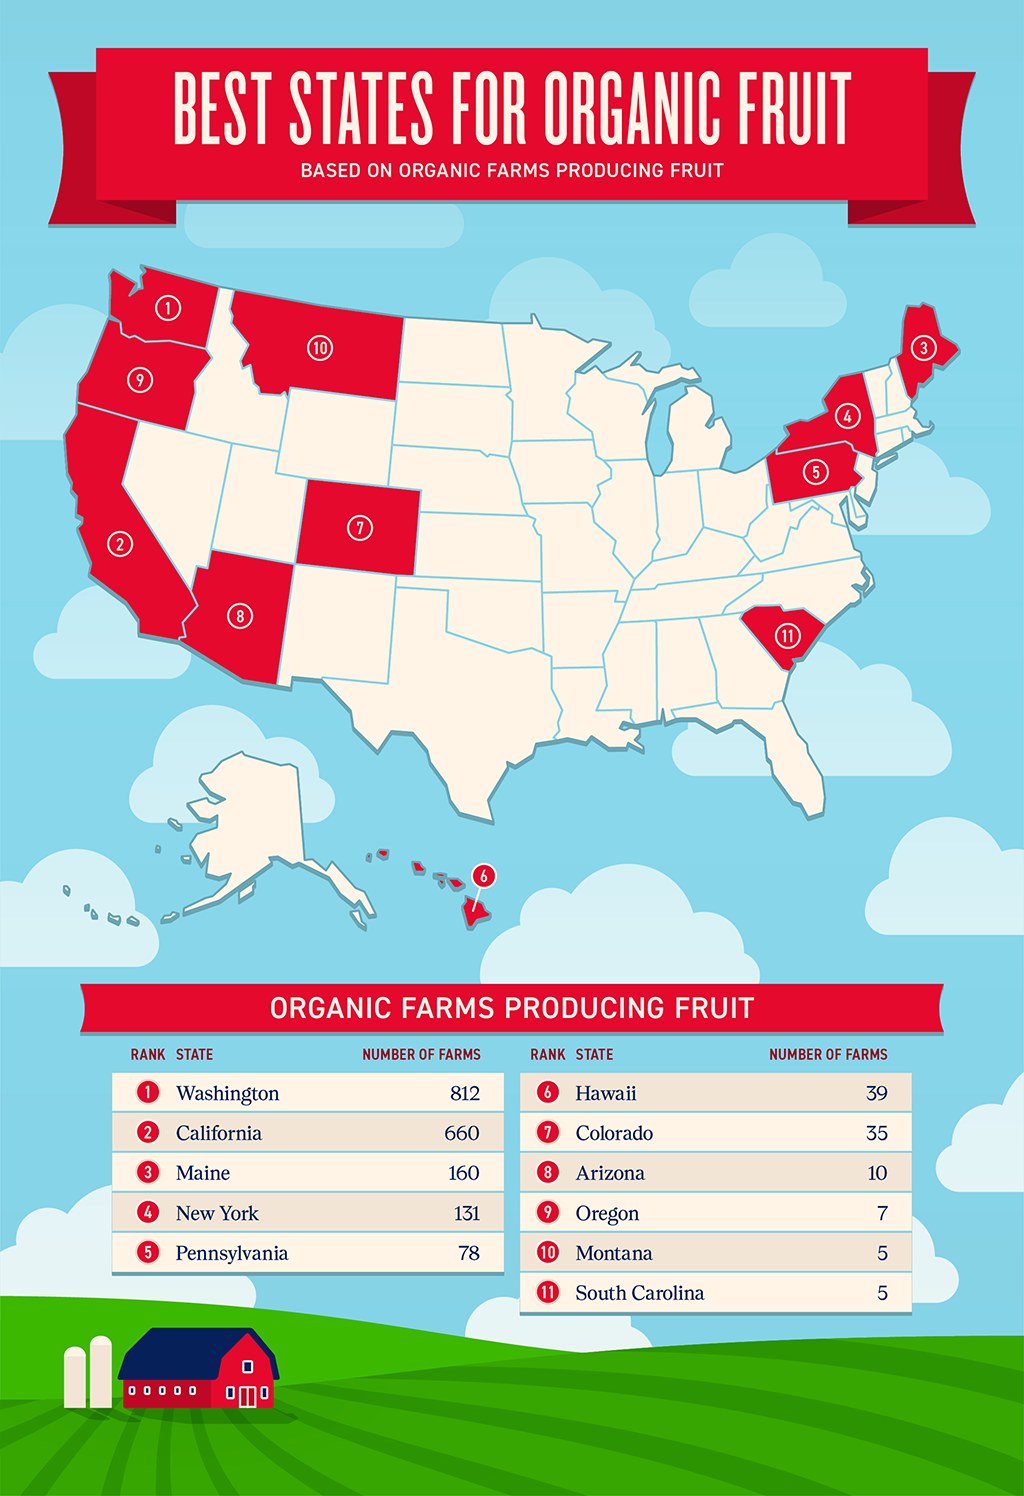 Best States for Organic Fruit